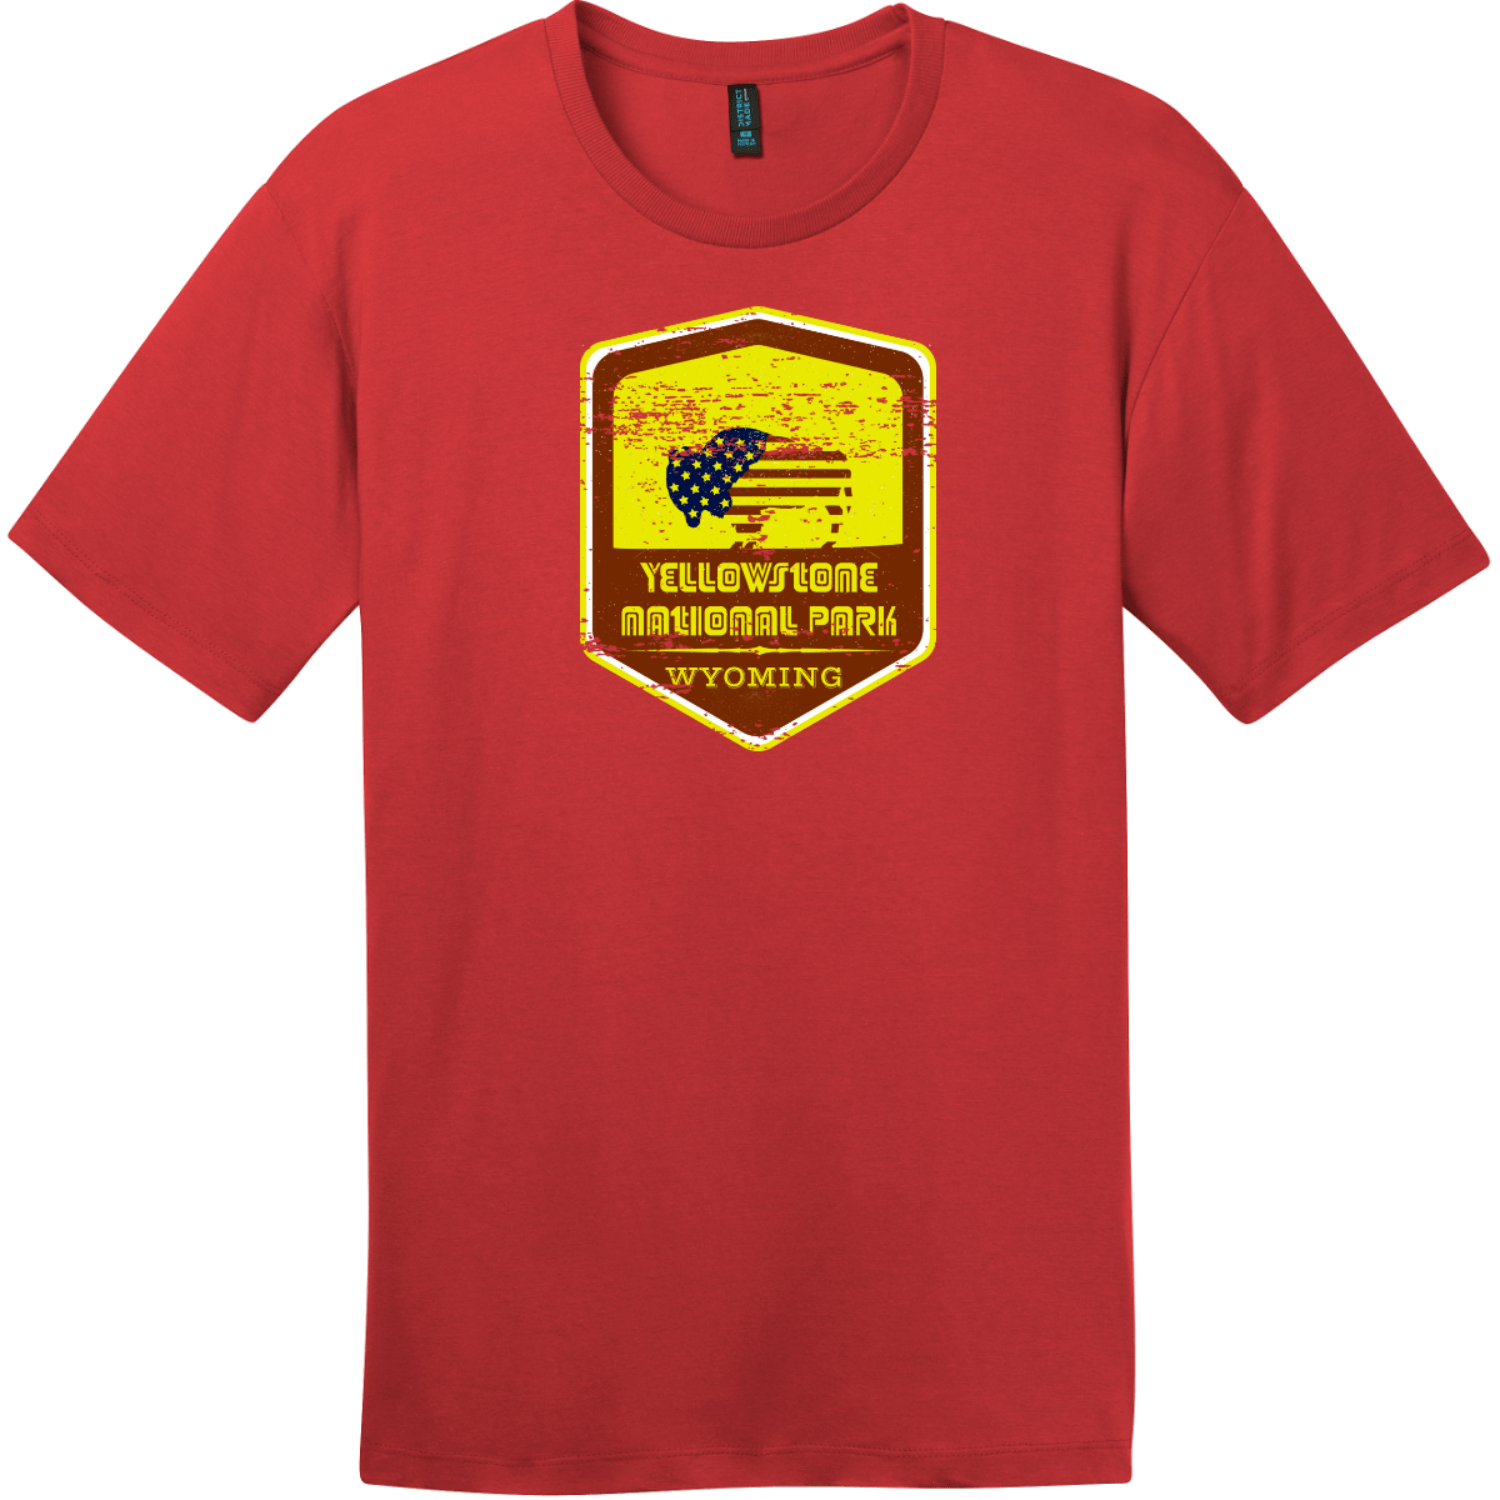 Yellowstone National Park Vintage T-Shirt Classic Red District Perfect Weight Tee DT104